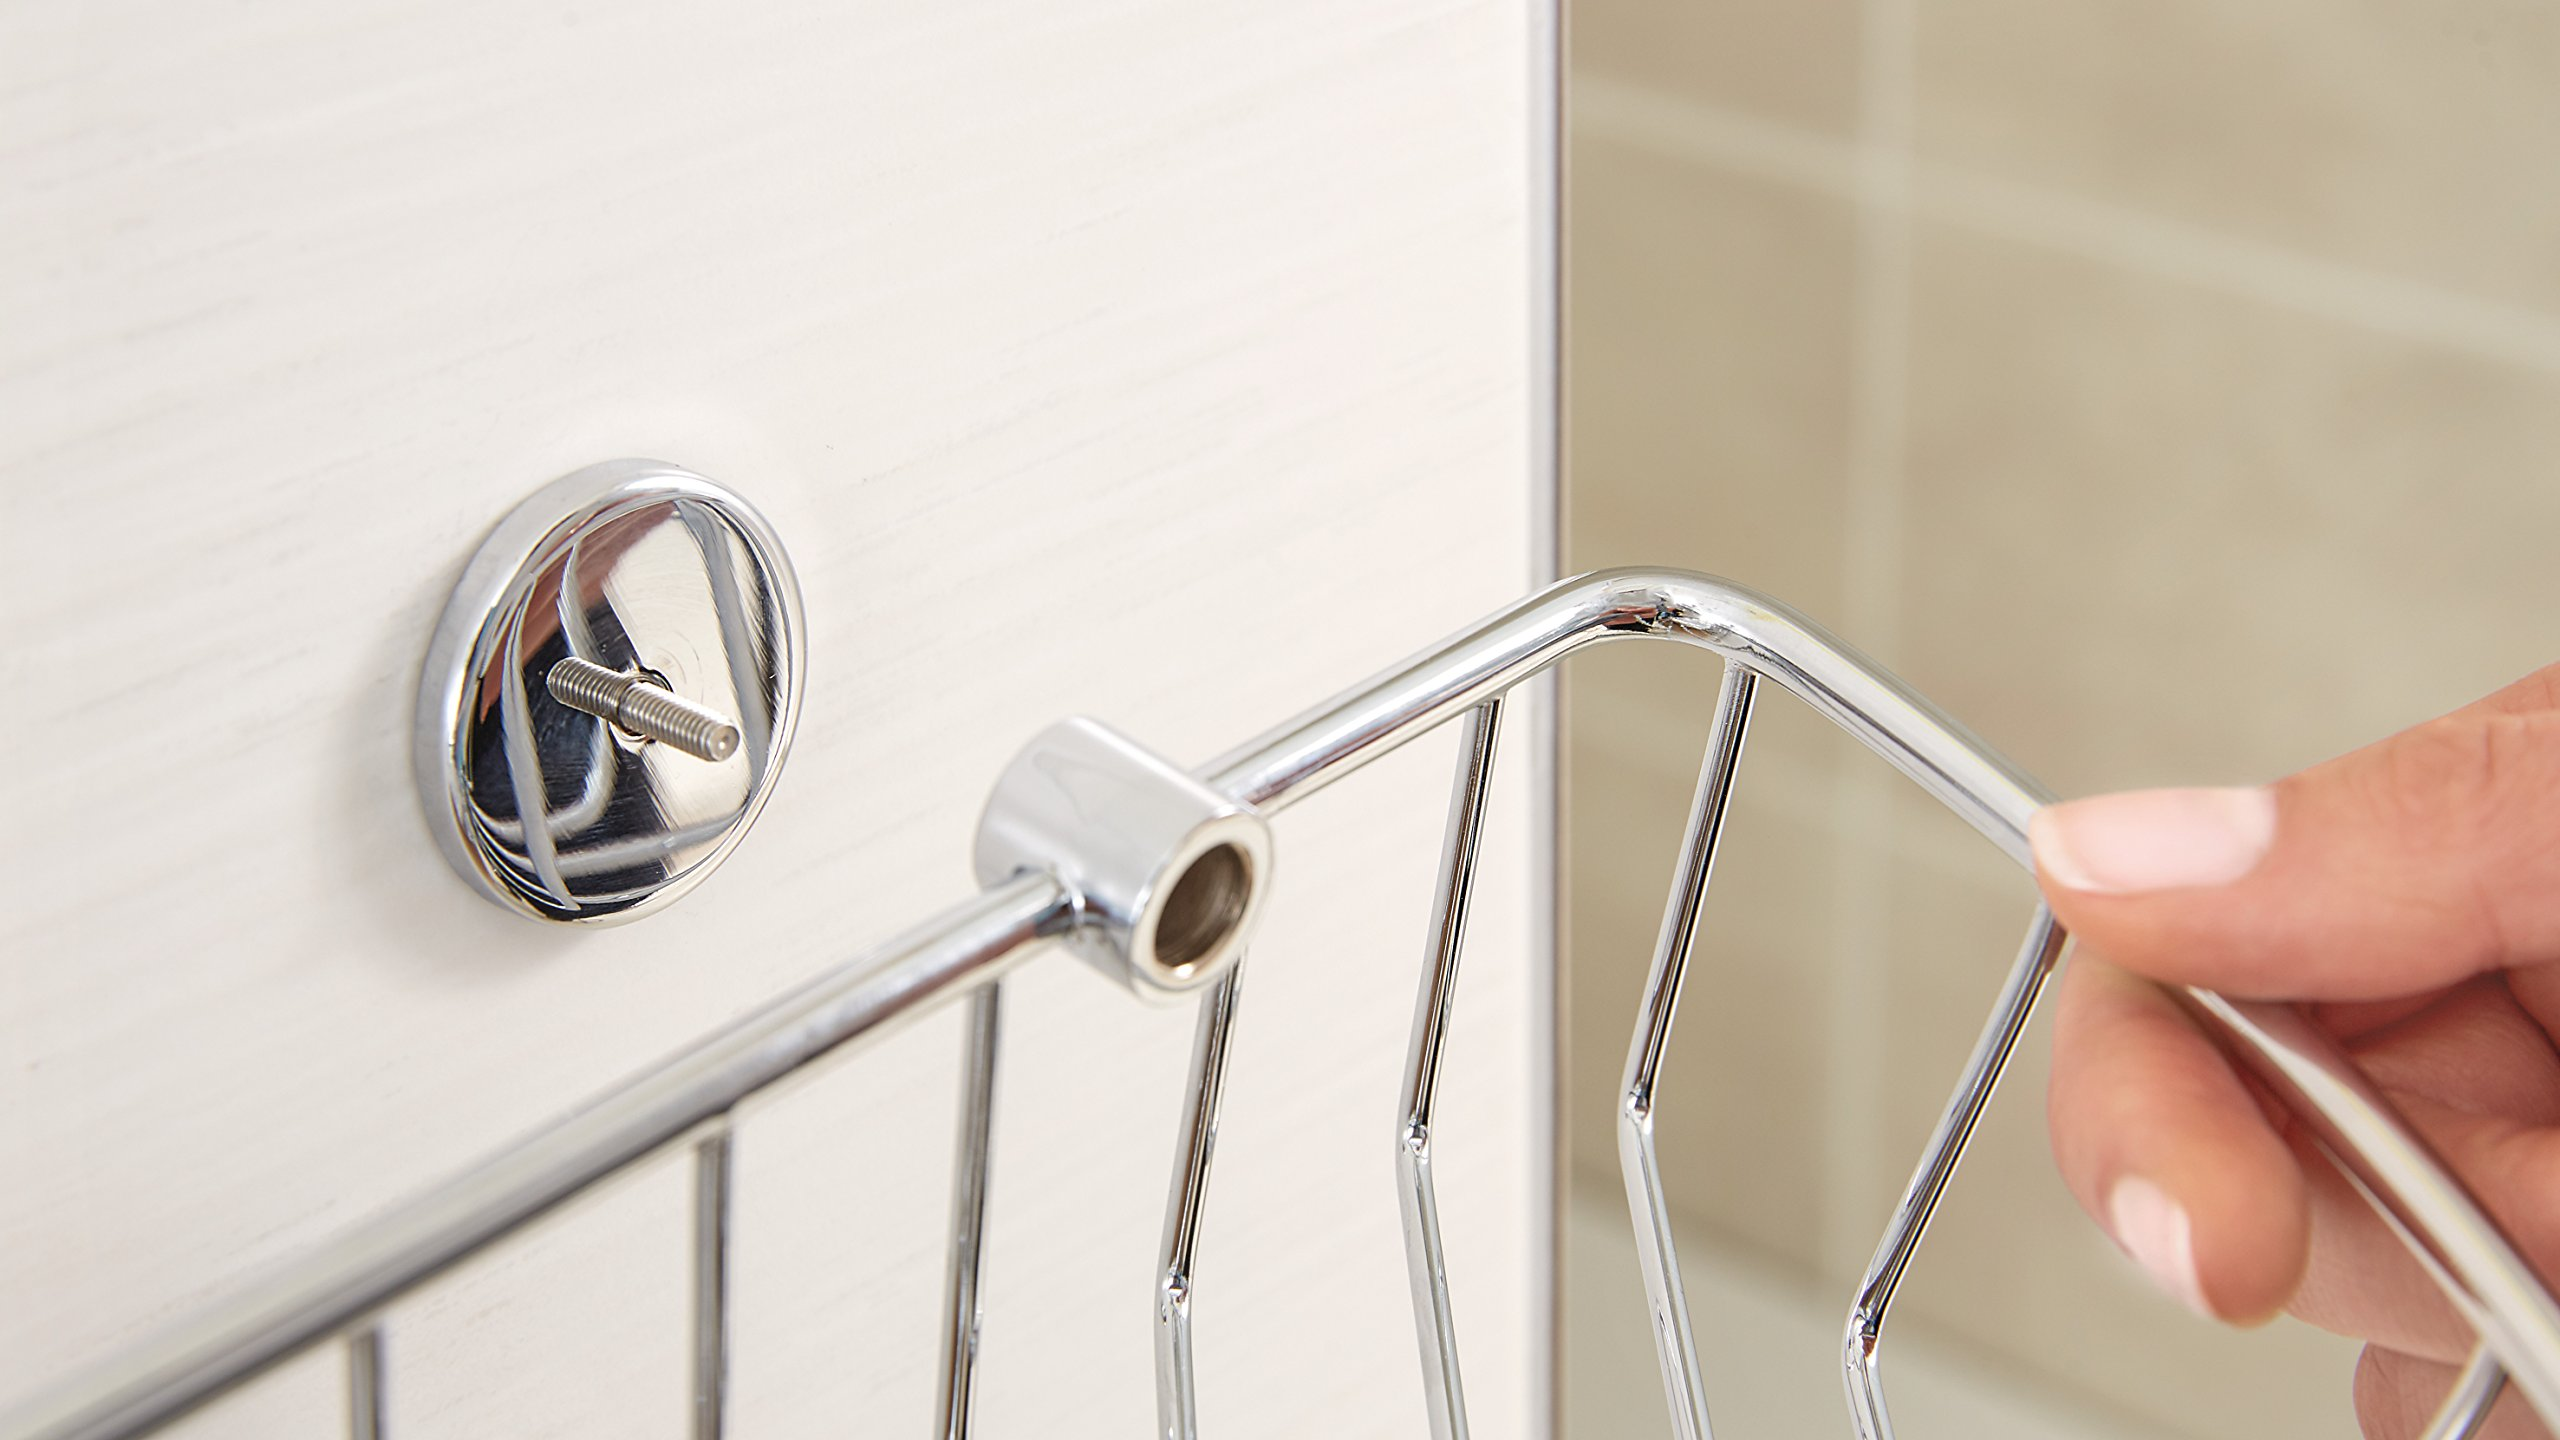 Tesa draad Shower Caddy Brass Chrome-Plated with Adhesive Solution 65 x 275 x 135 mm by tesa UK (Image #5)